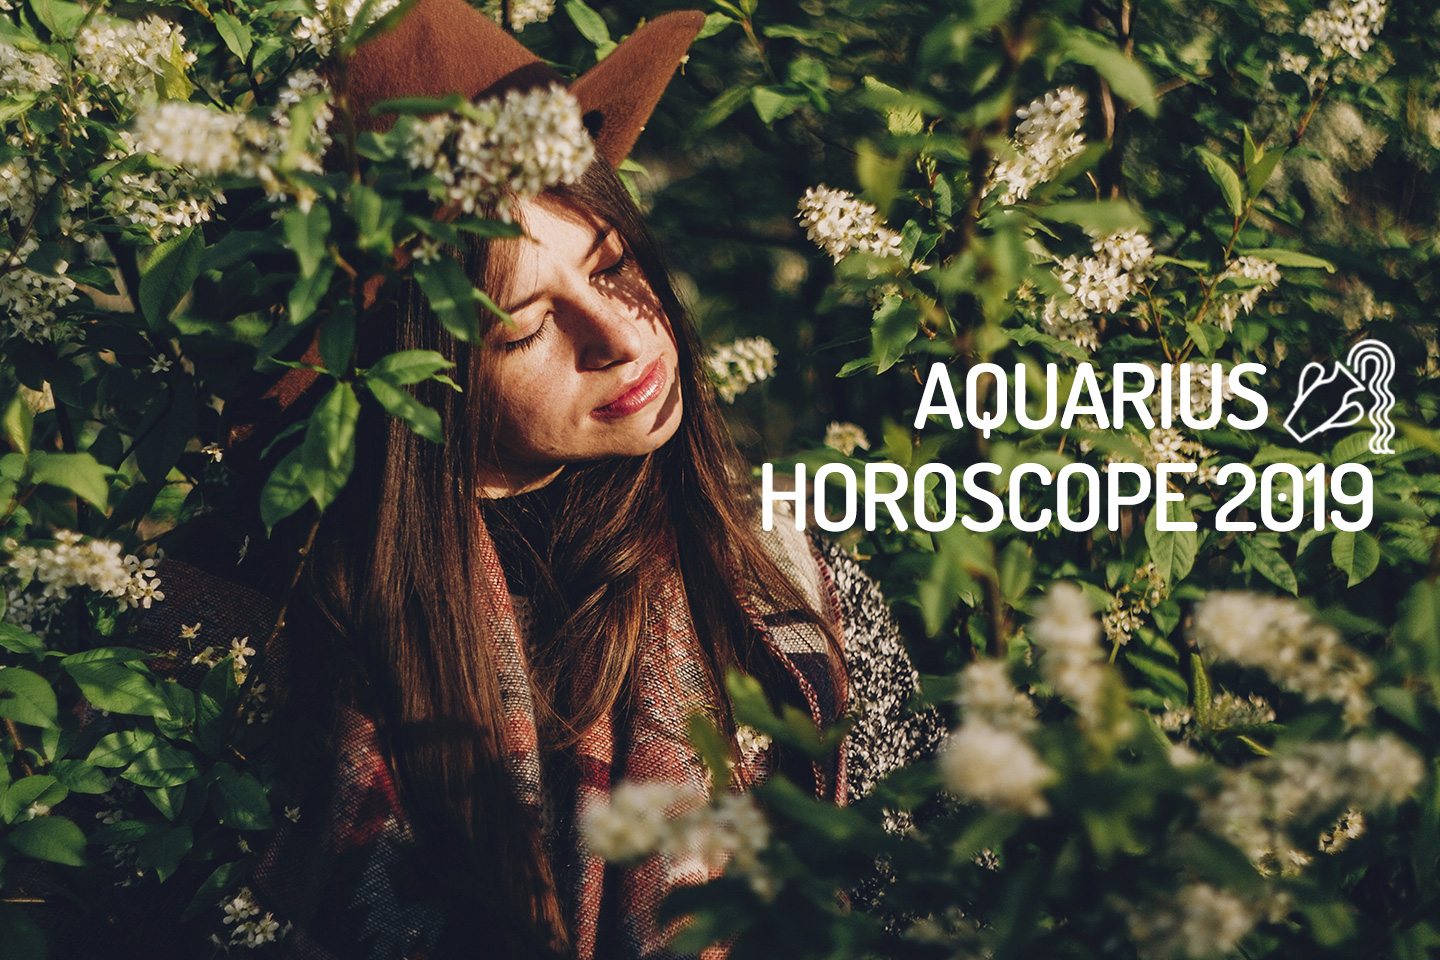 Aquarius Horoscope 2019 - WeMystic